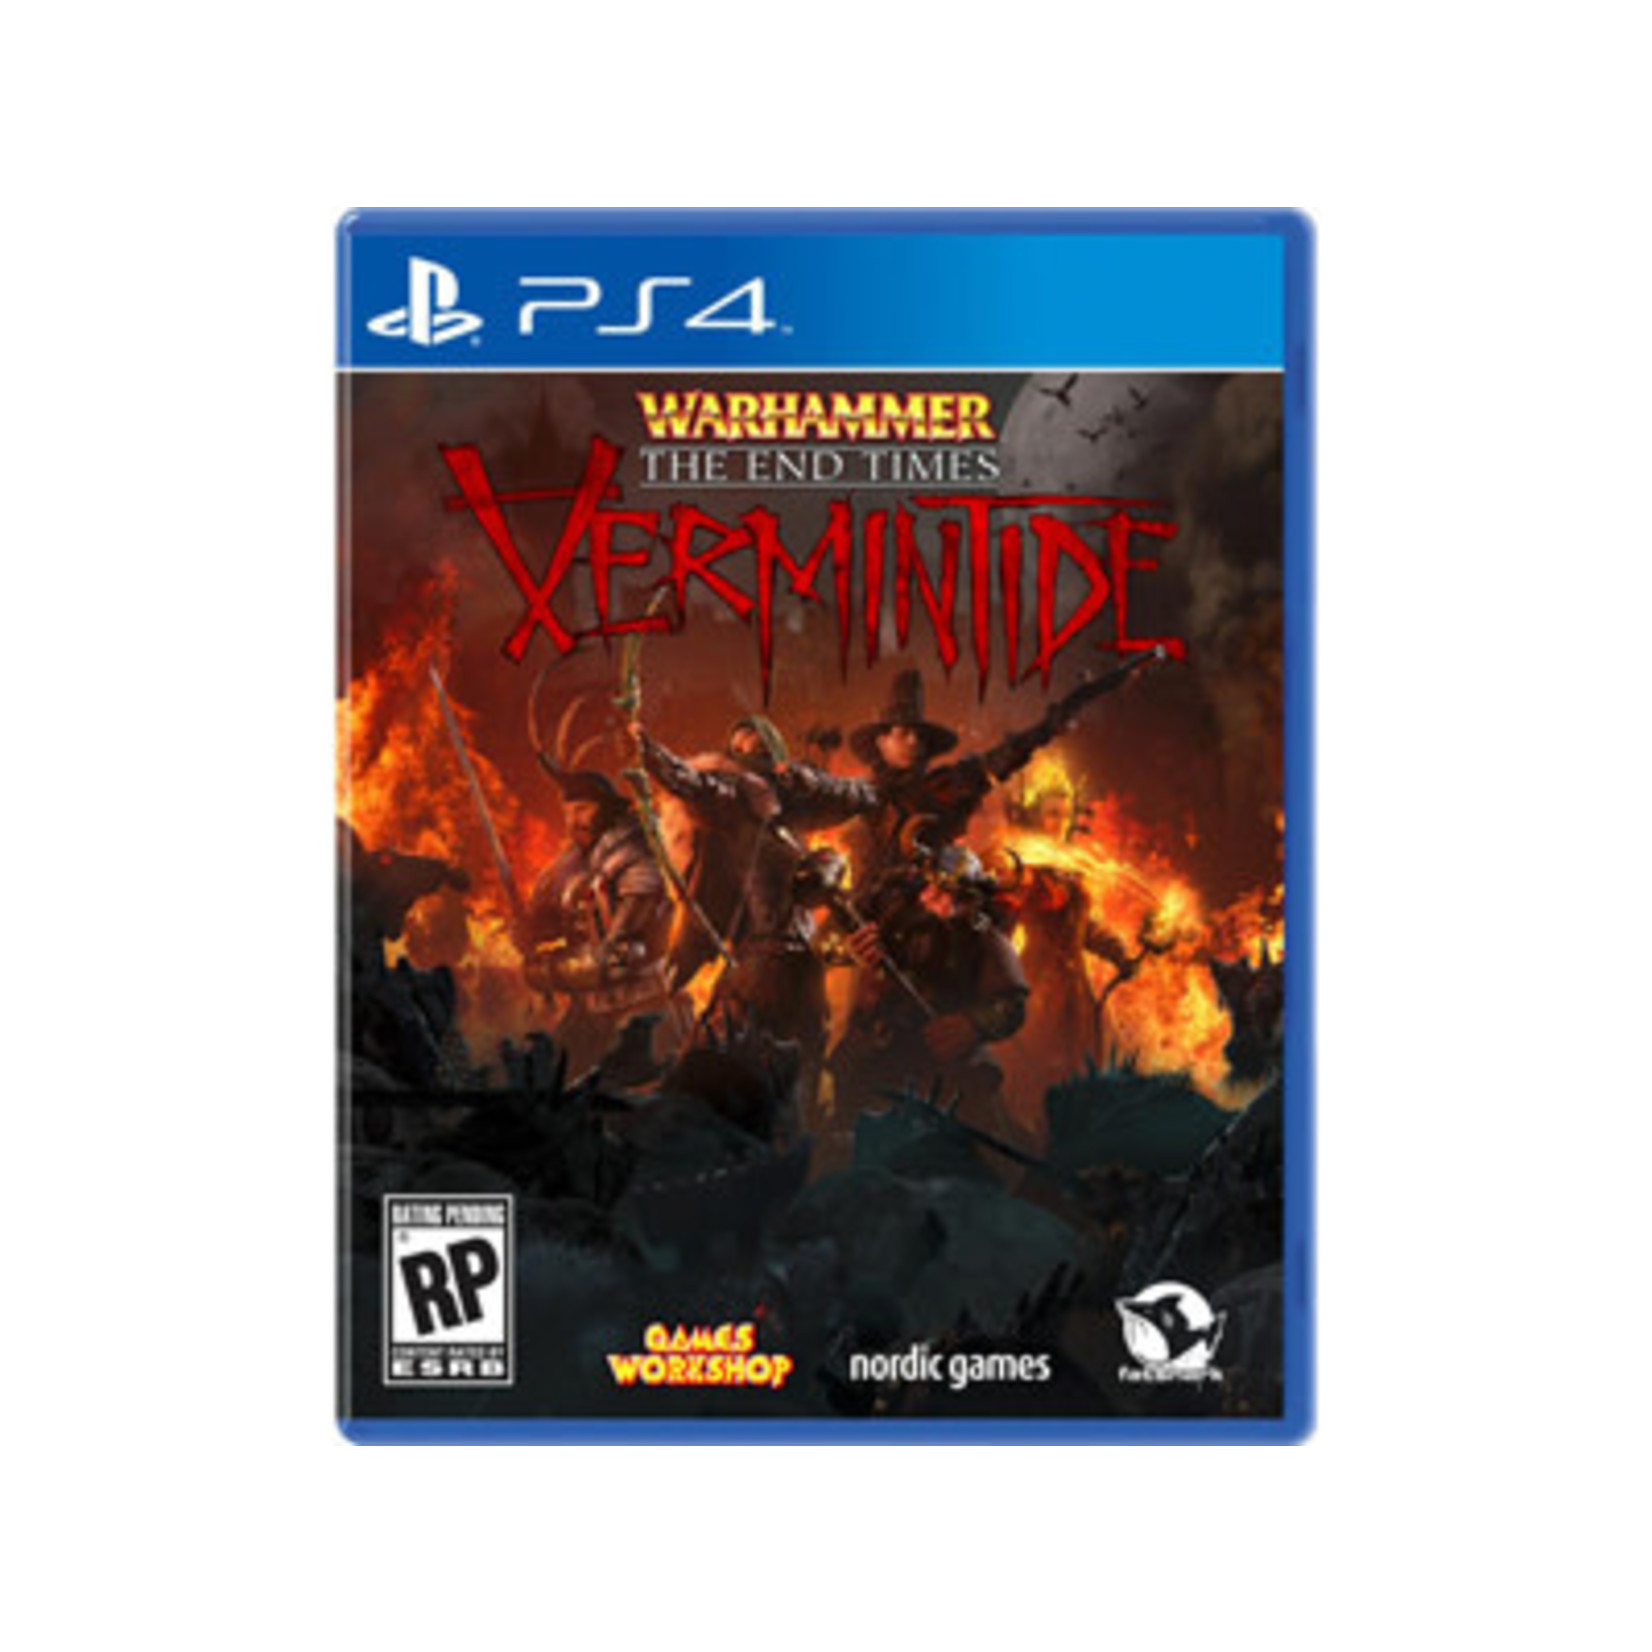 PS4-Warhammer: End Times - Vermintide